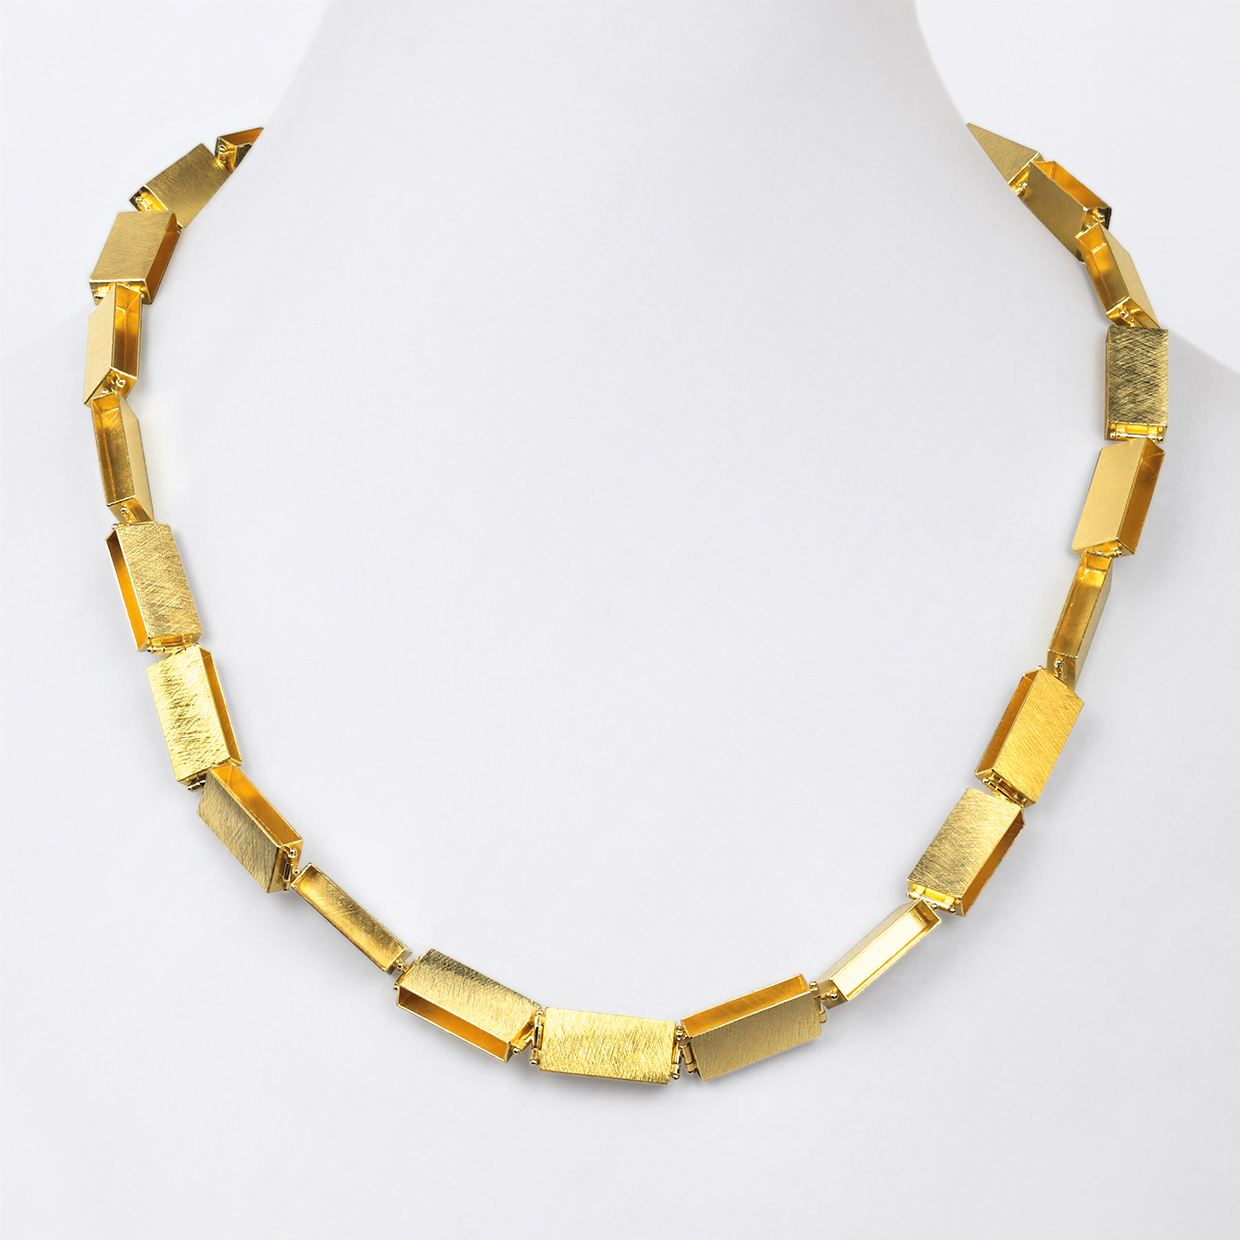 necklace  2013  gold  750  600x10  mm